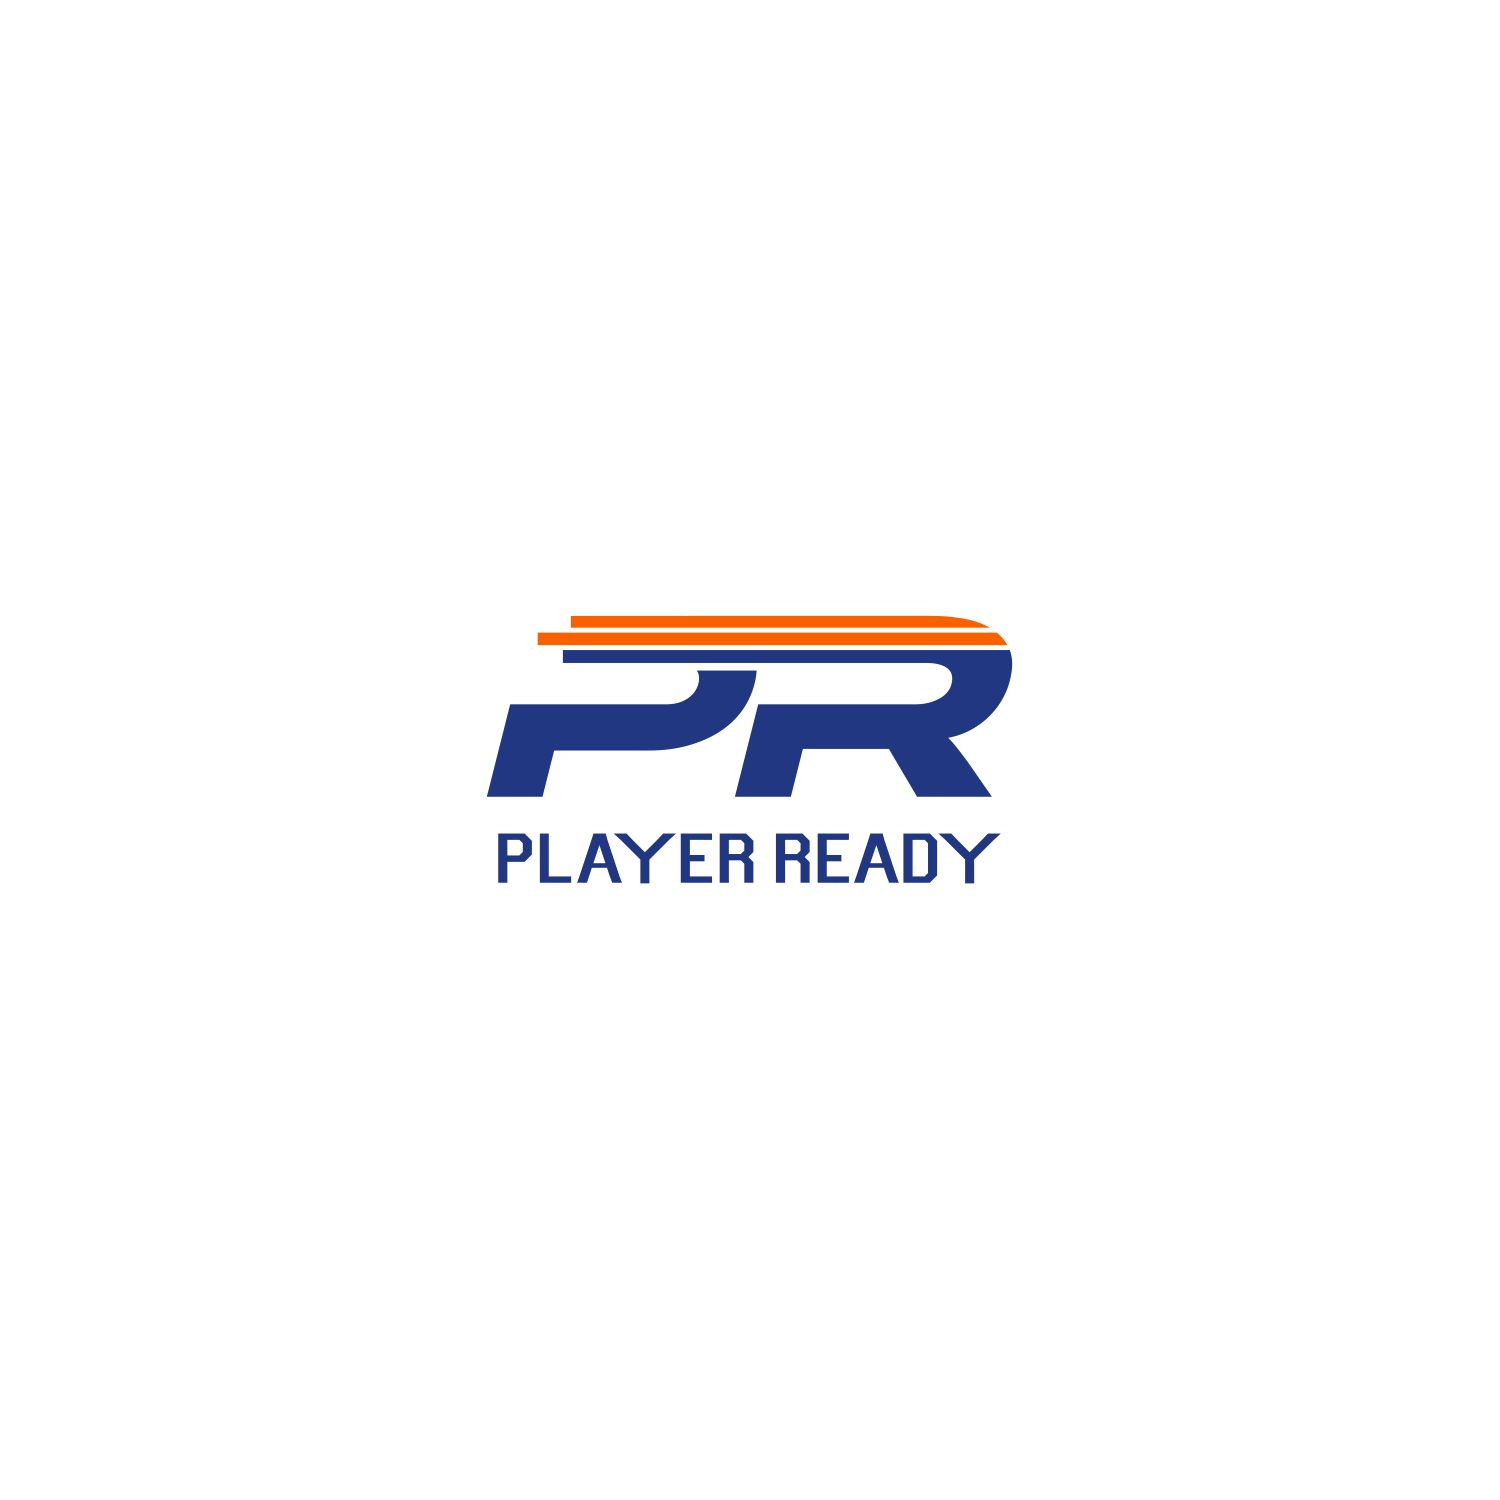 Bold, Modern, Online Logo Design for Player Ready by